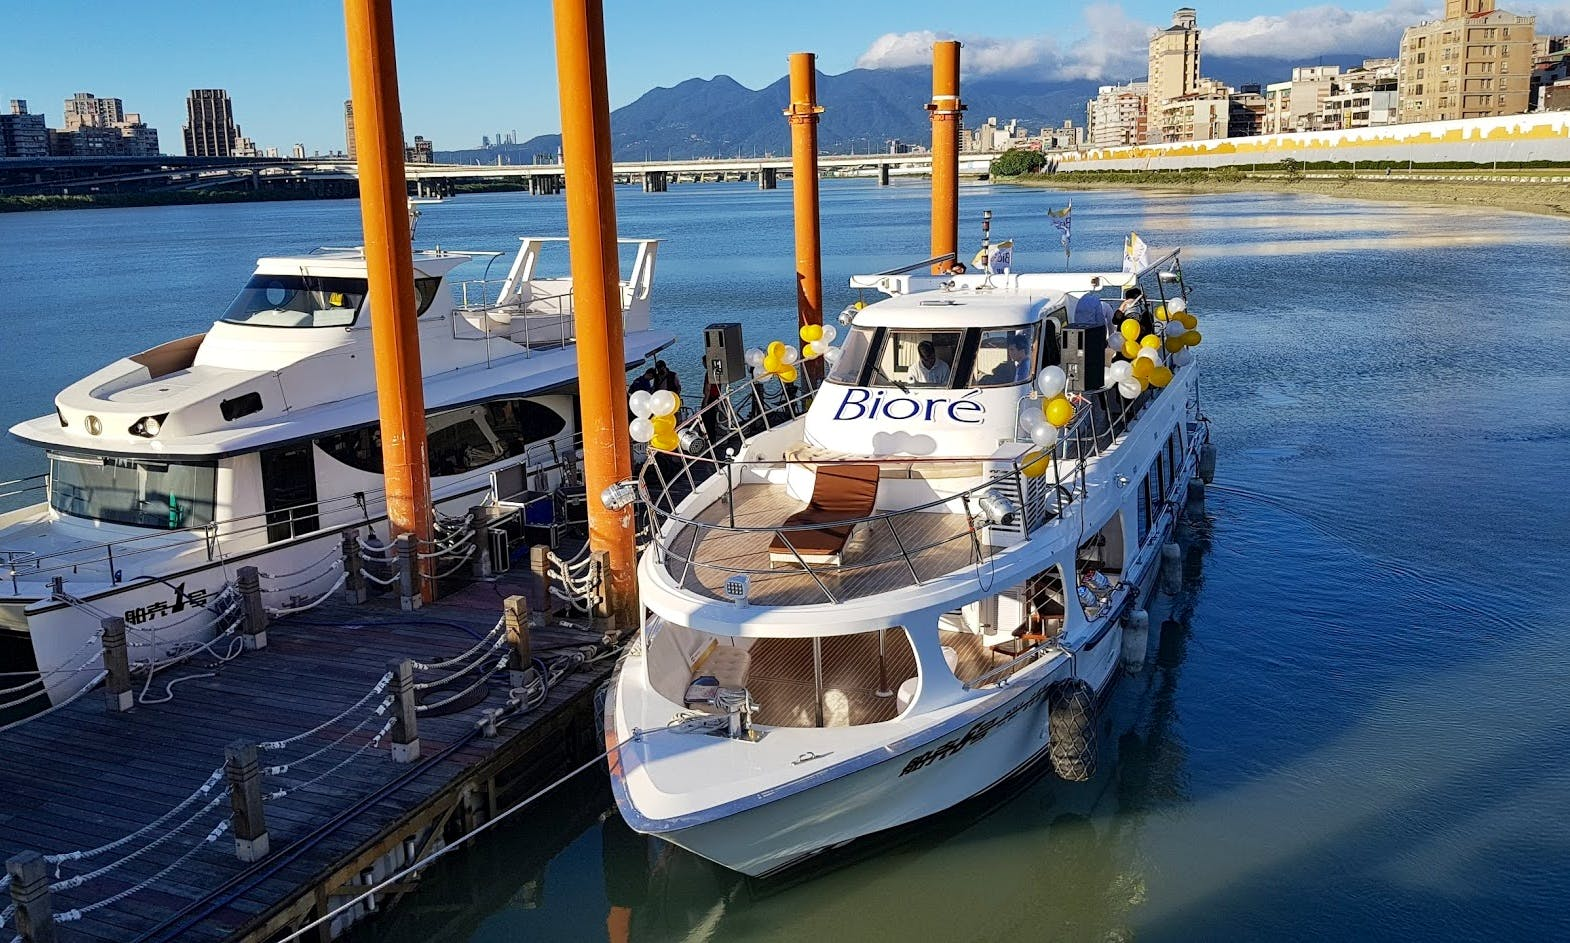 55' Party Boat for 30 people at Taipei Dadaocheng Wharf, Taiwan